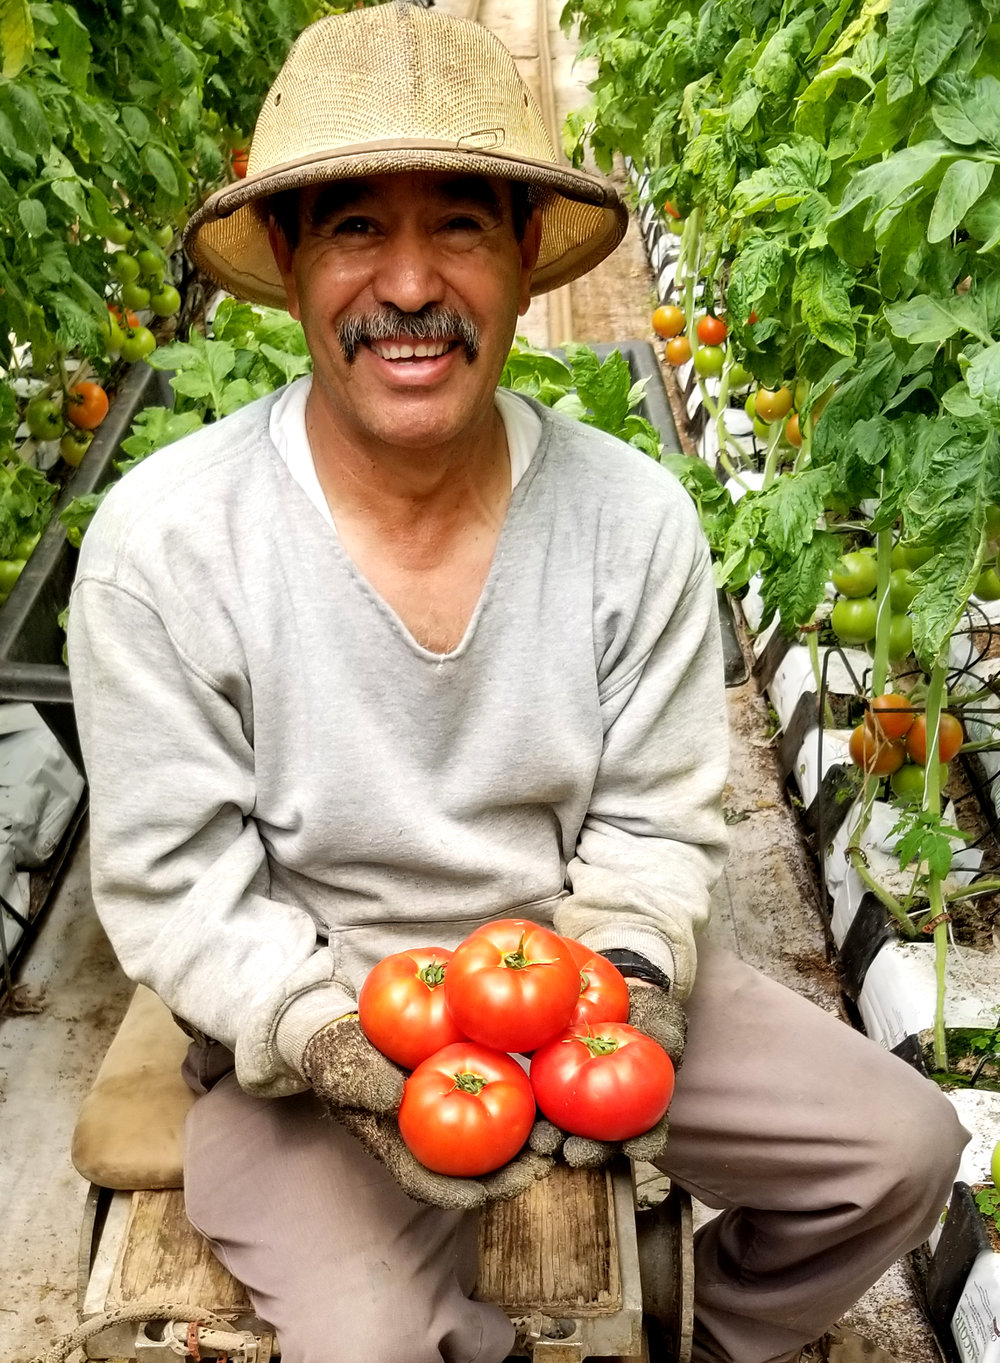 Jose is smiling because he was just handed some ripe and delicious Beylik tomatoes. Jose has worked at Beylik Farms for 35 years. He is the farm's Foreman and an expert at growing tomatoes.